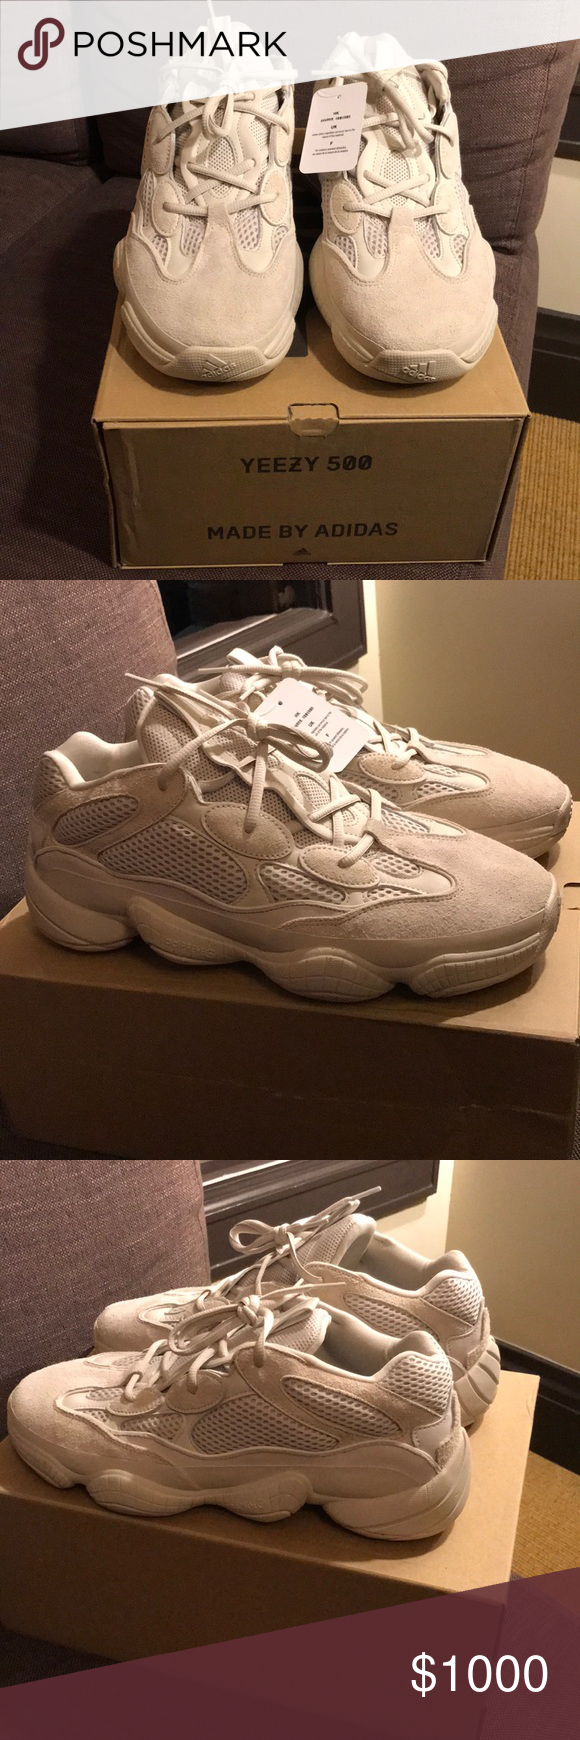 """377afcdd16d67 Adidas Yeezy 500 """"Blush"""" Deadstock and 100% authentic"""